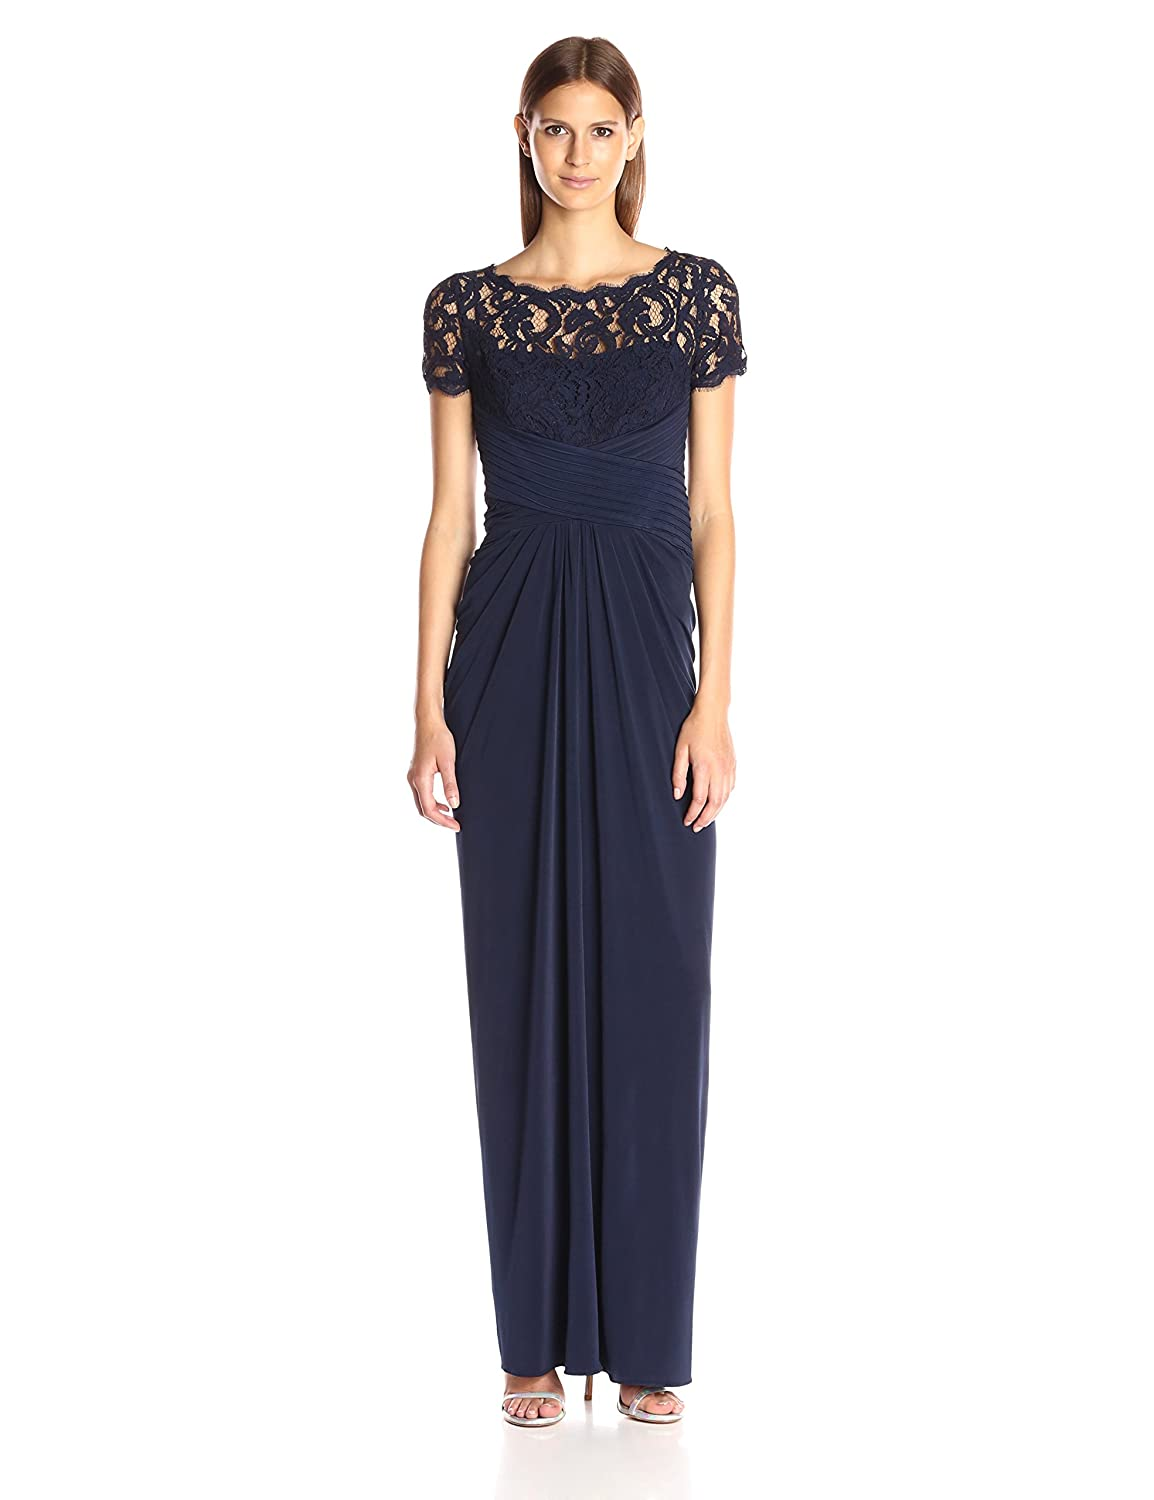 4348472cb5261 Top1  Adrianna Papell Women s 3 4 Sleeve Gown with Lace Bodice and Jersey  Draped Skirt. Wholesale ...